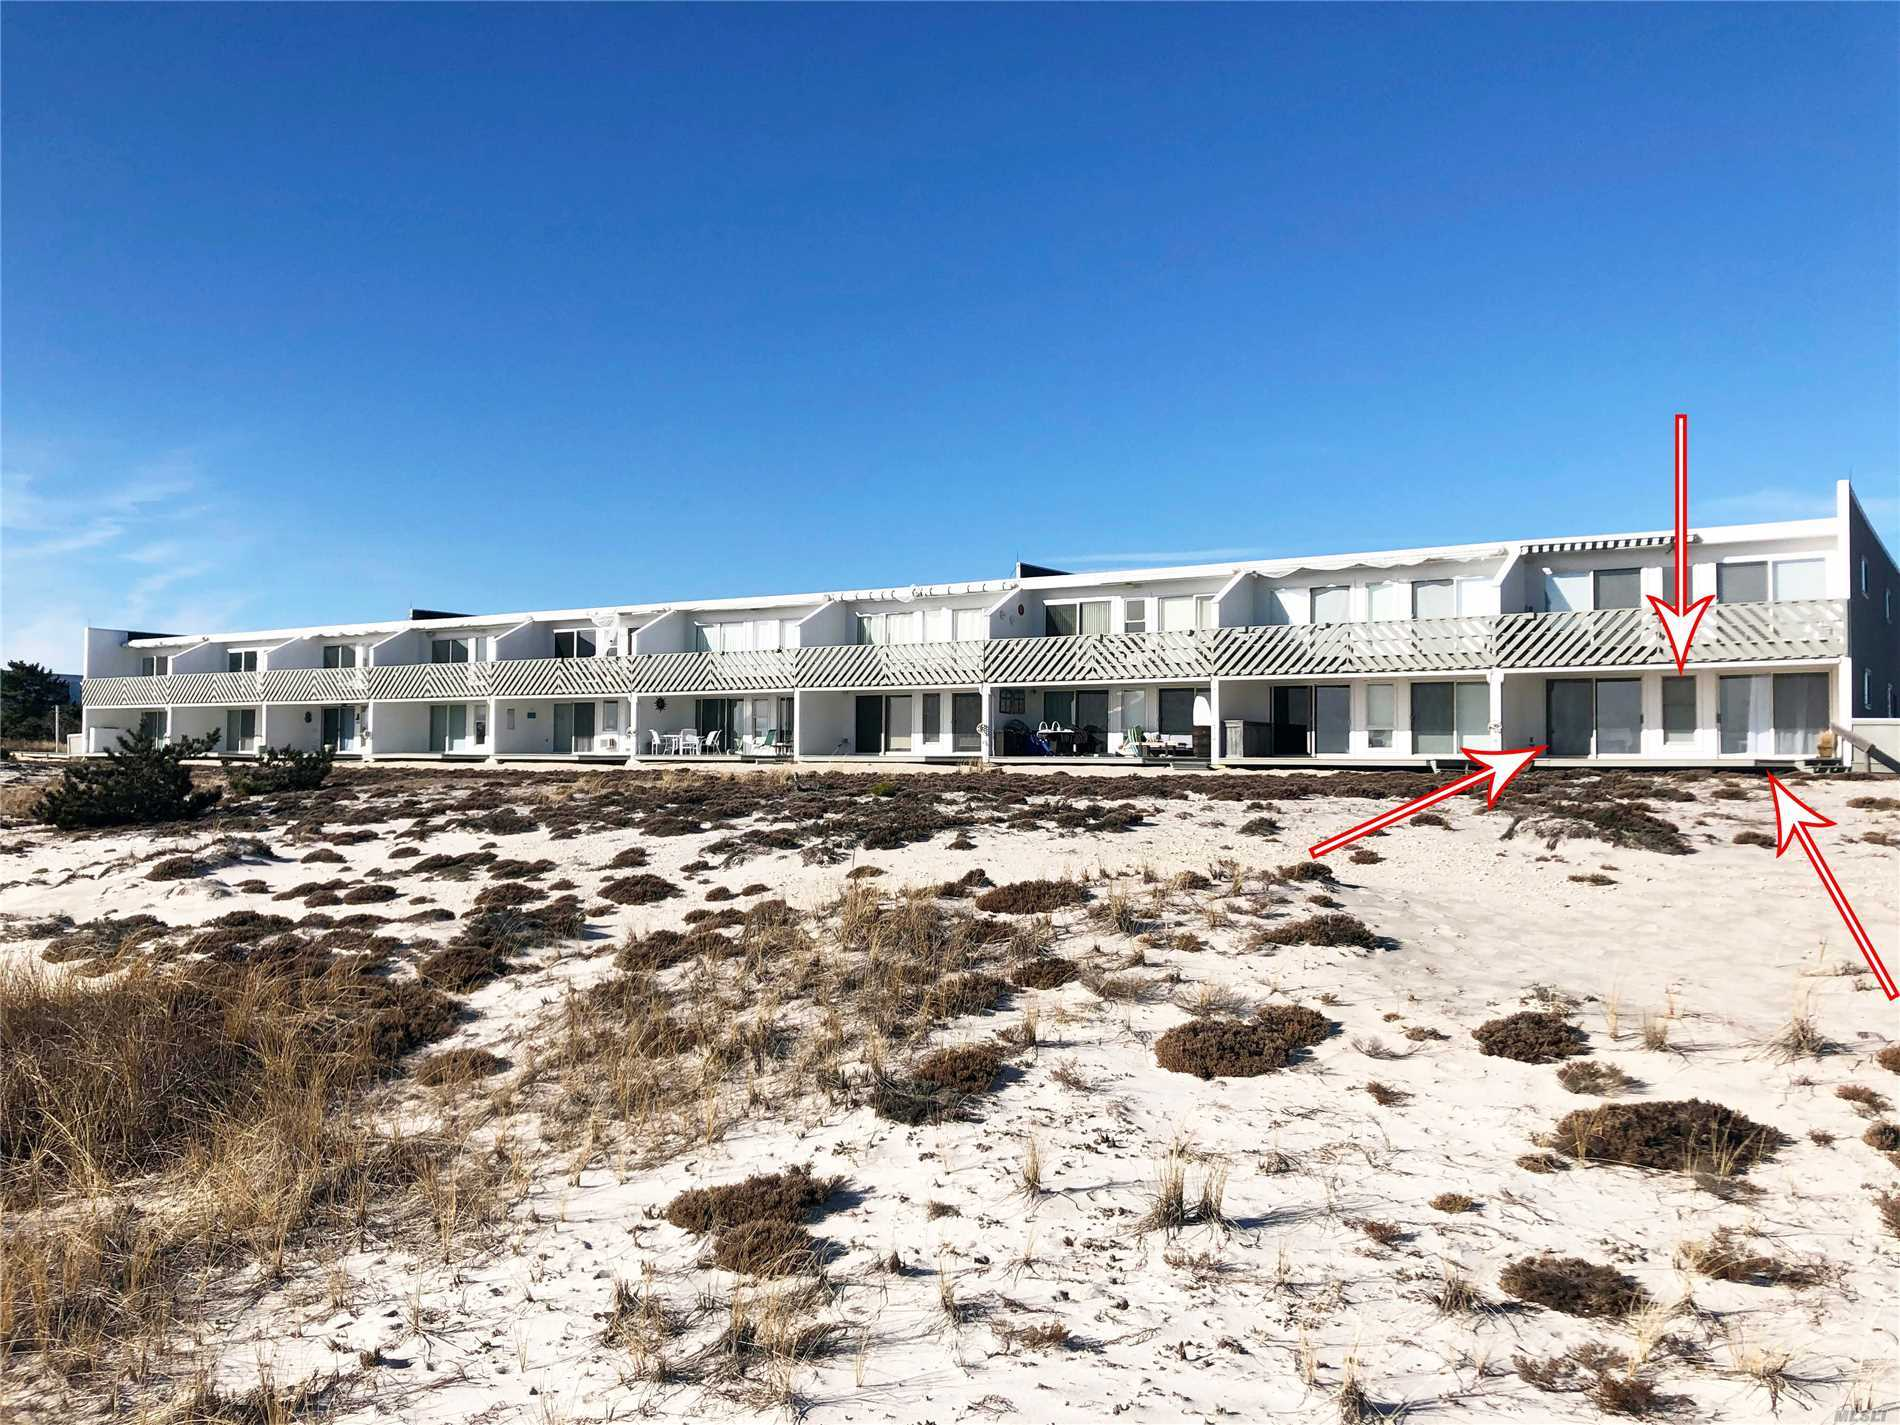 Come Enjoy Amazing Ocean Views And Sunsets This Summer. This Renovated Unit With Open Floor Plans Offers Two Bedrooms Two Full Baths, Living Room, Eat-In-Kitchen And Private Deck Just Steps Away From The Ocean. Minutes To Westhampton Beach Village!